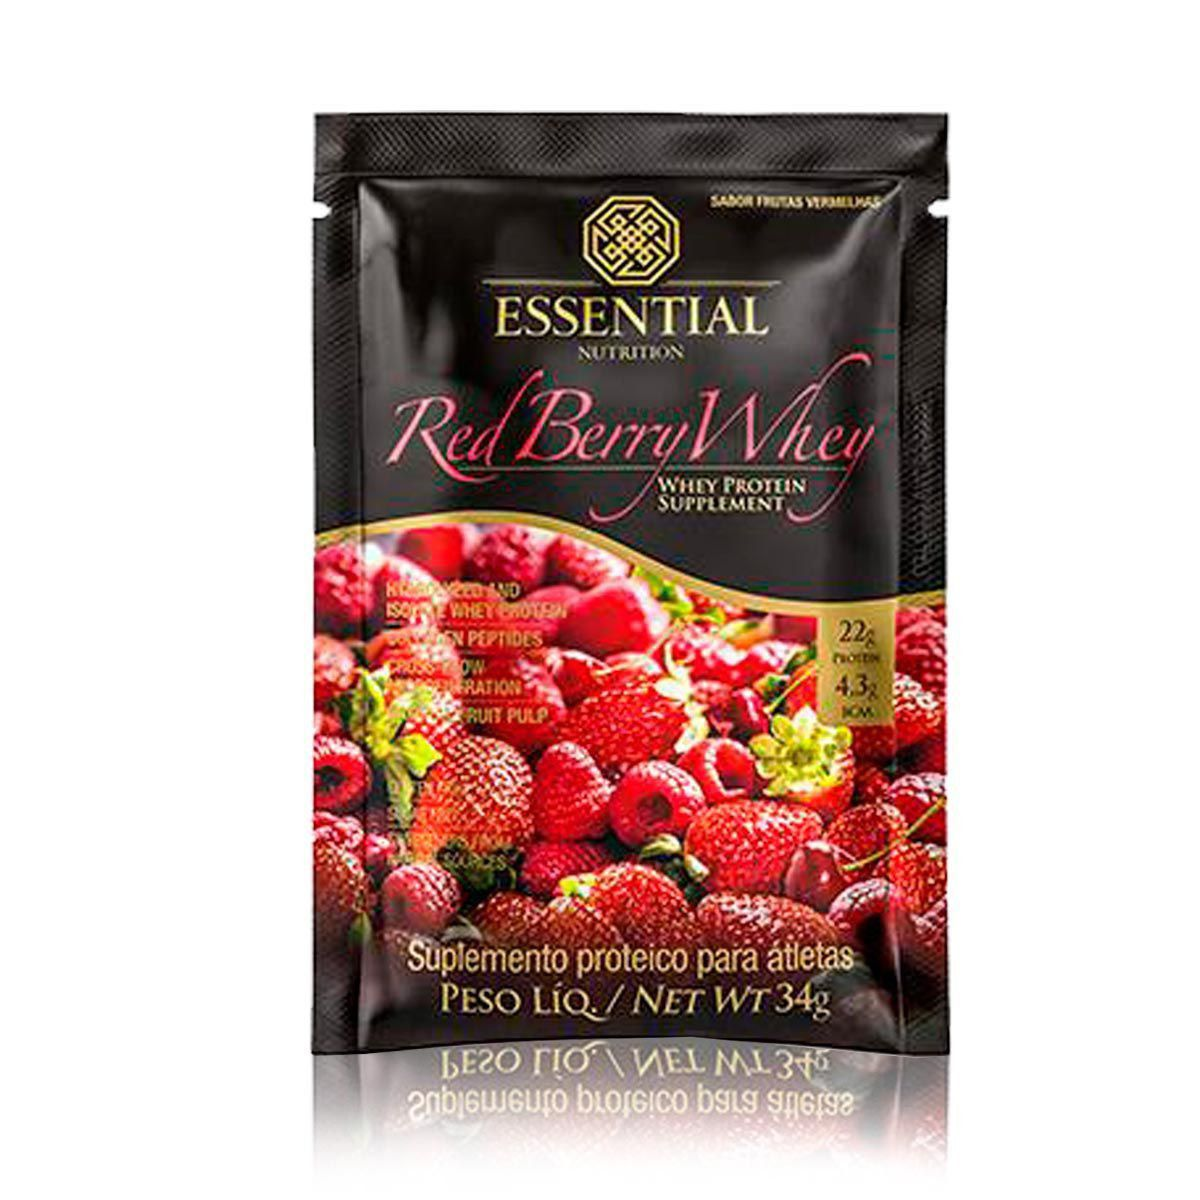 Red Berry Whey Sachê Essential Nutrition